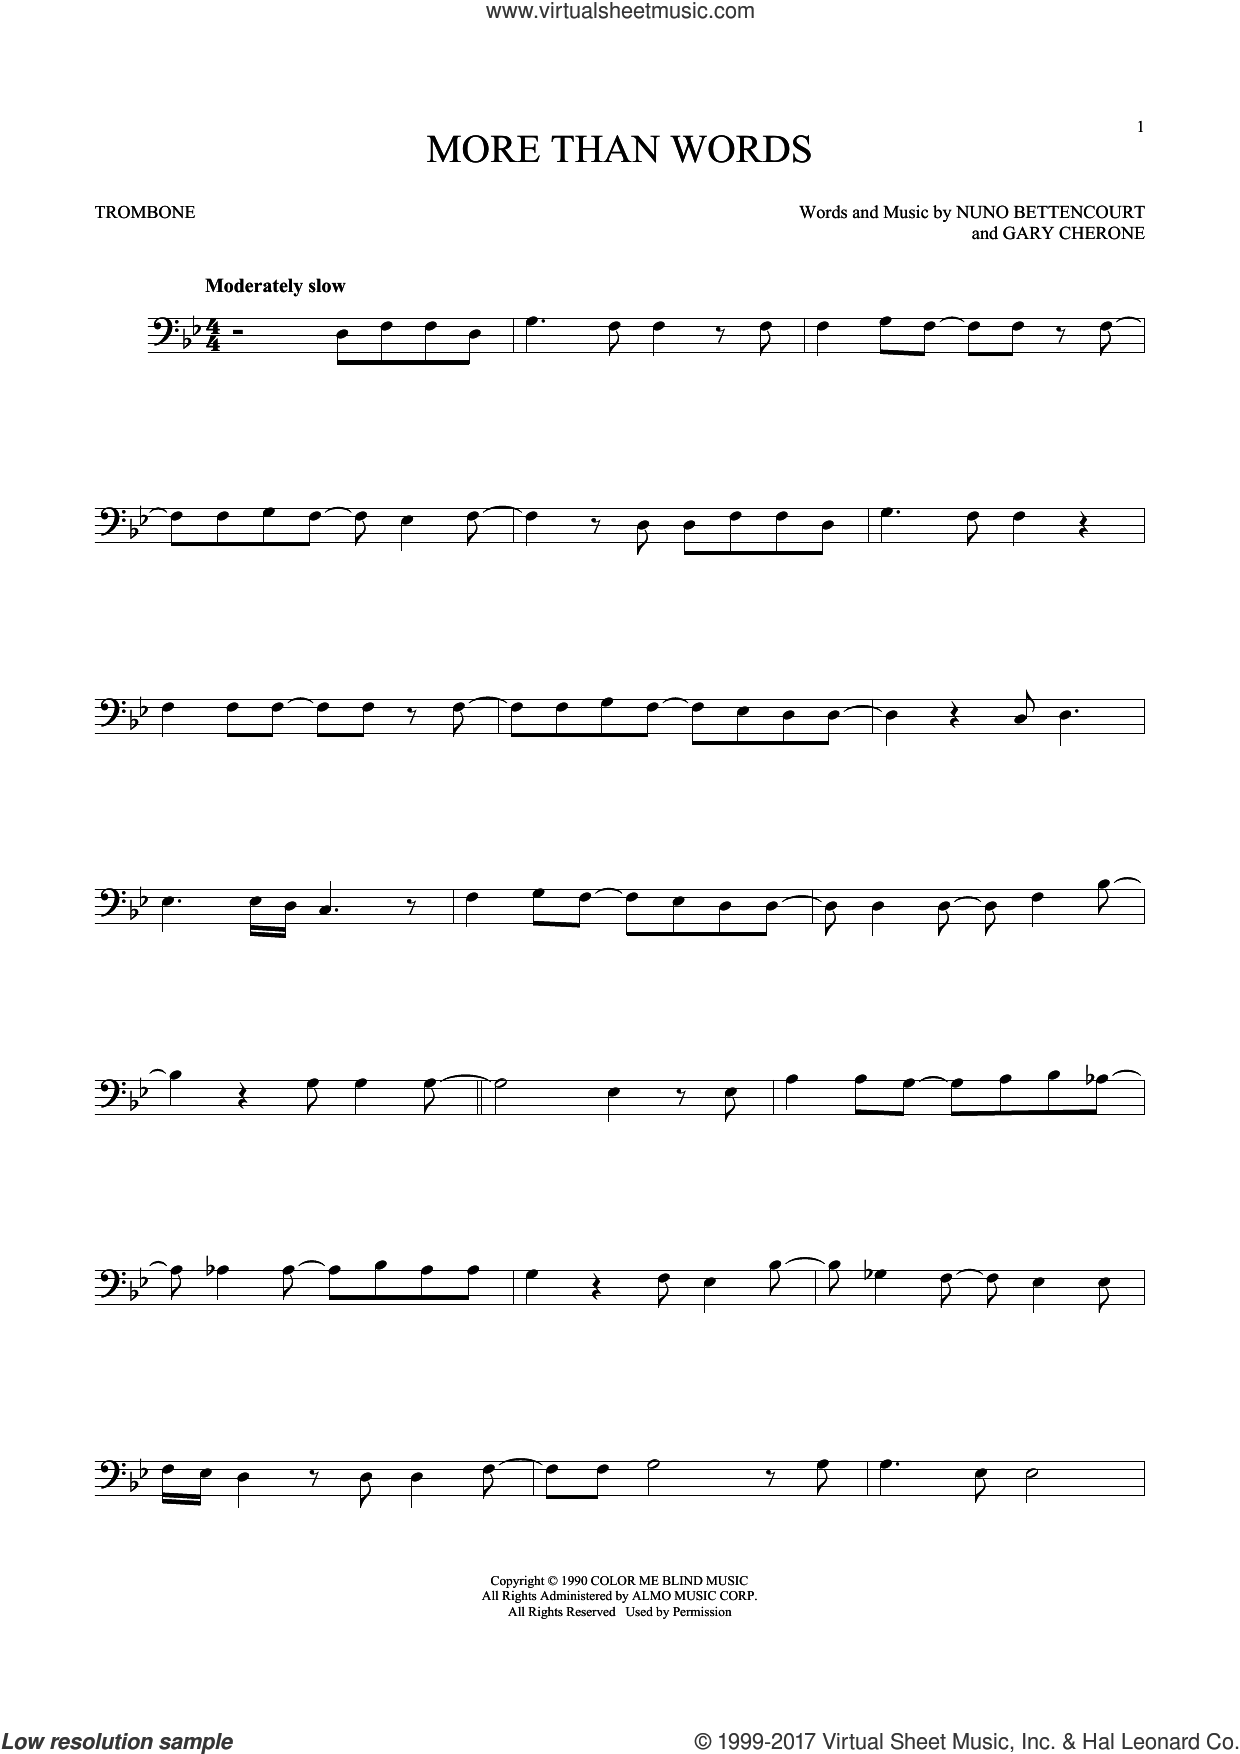 More Than Words sheet music for trombone solo by Extreme, Gary Cherone and Nuno Bettencourt, intermediate. Score Image Preview.